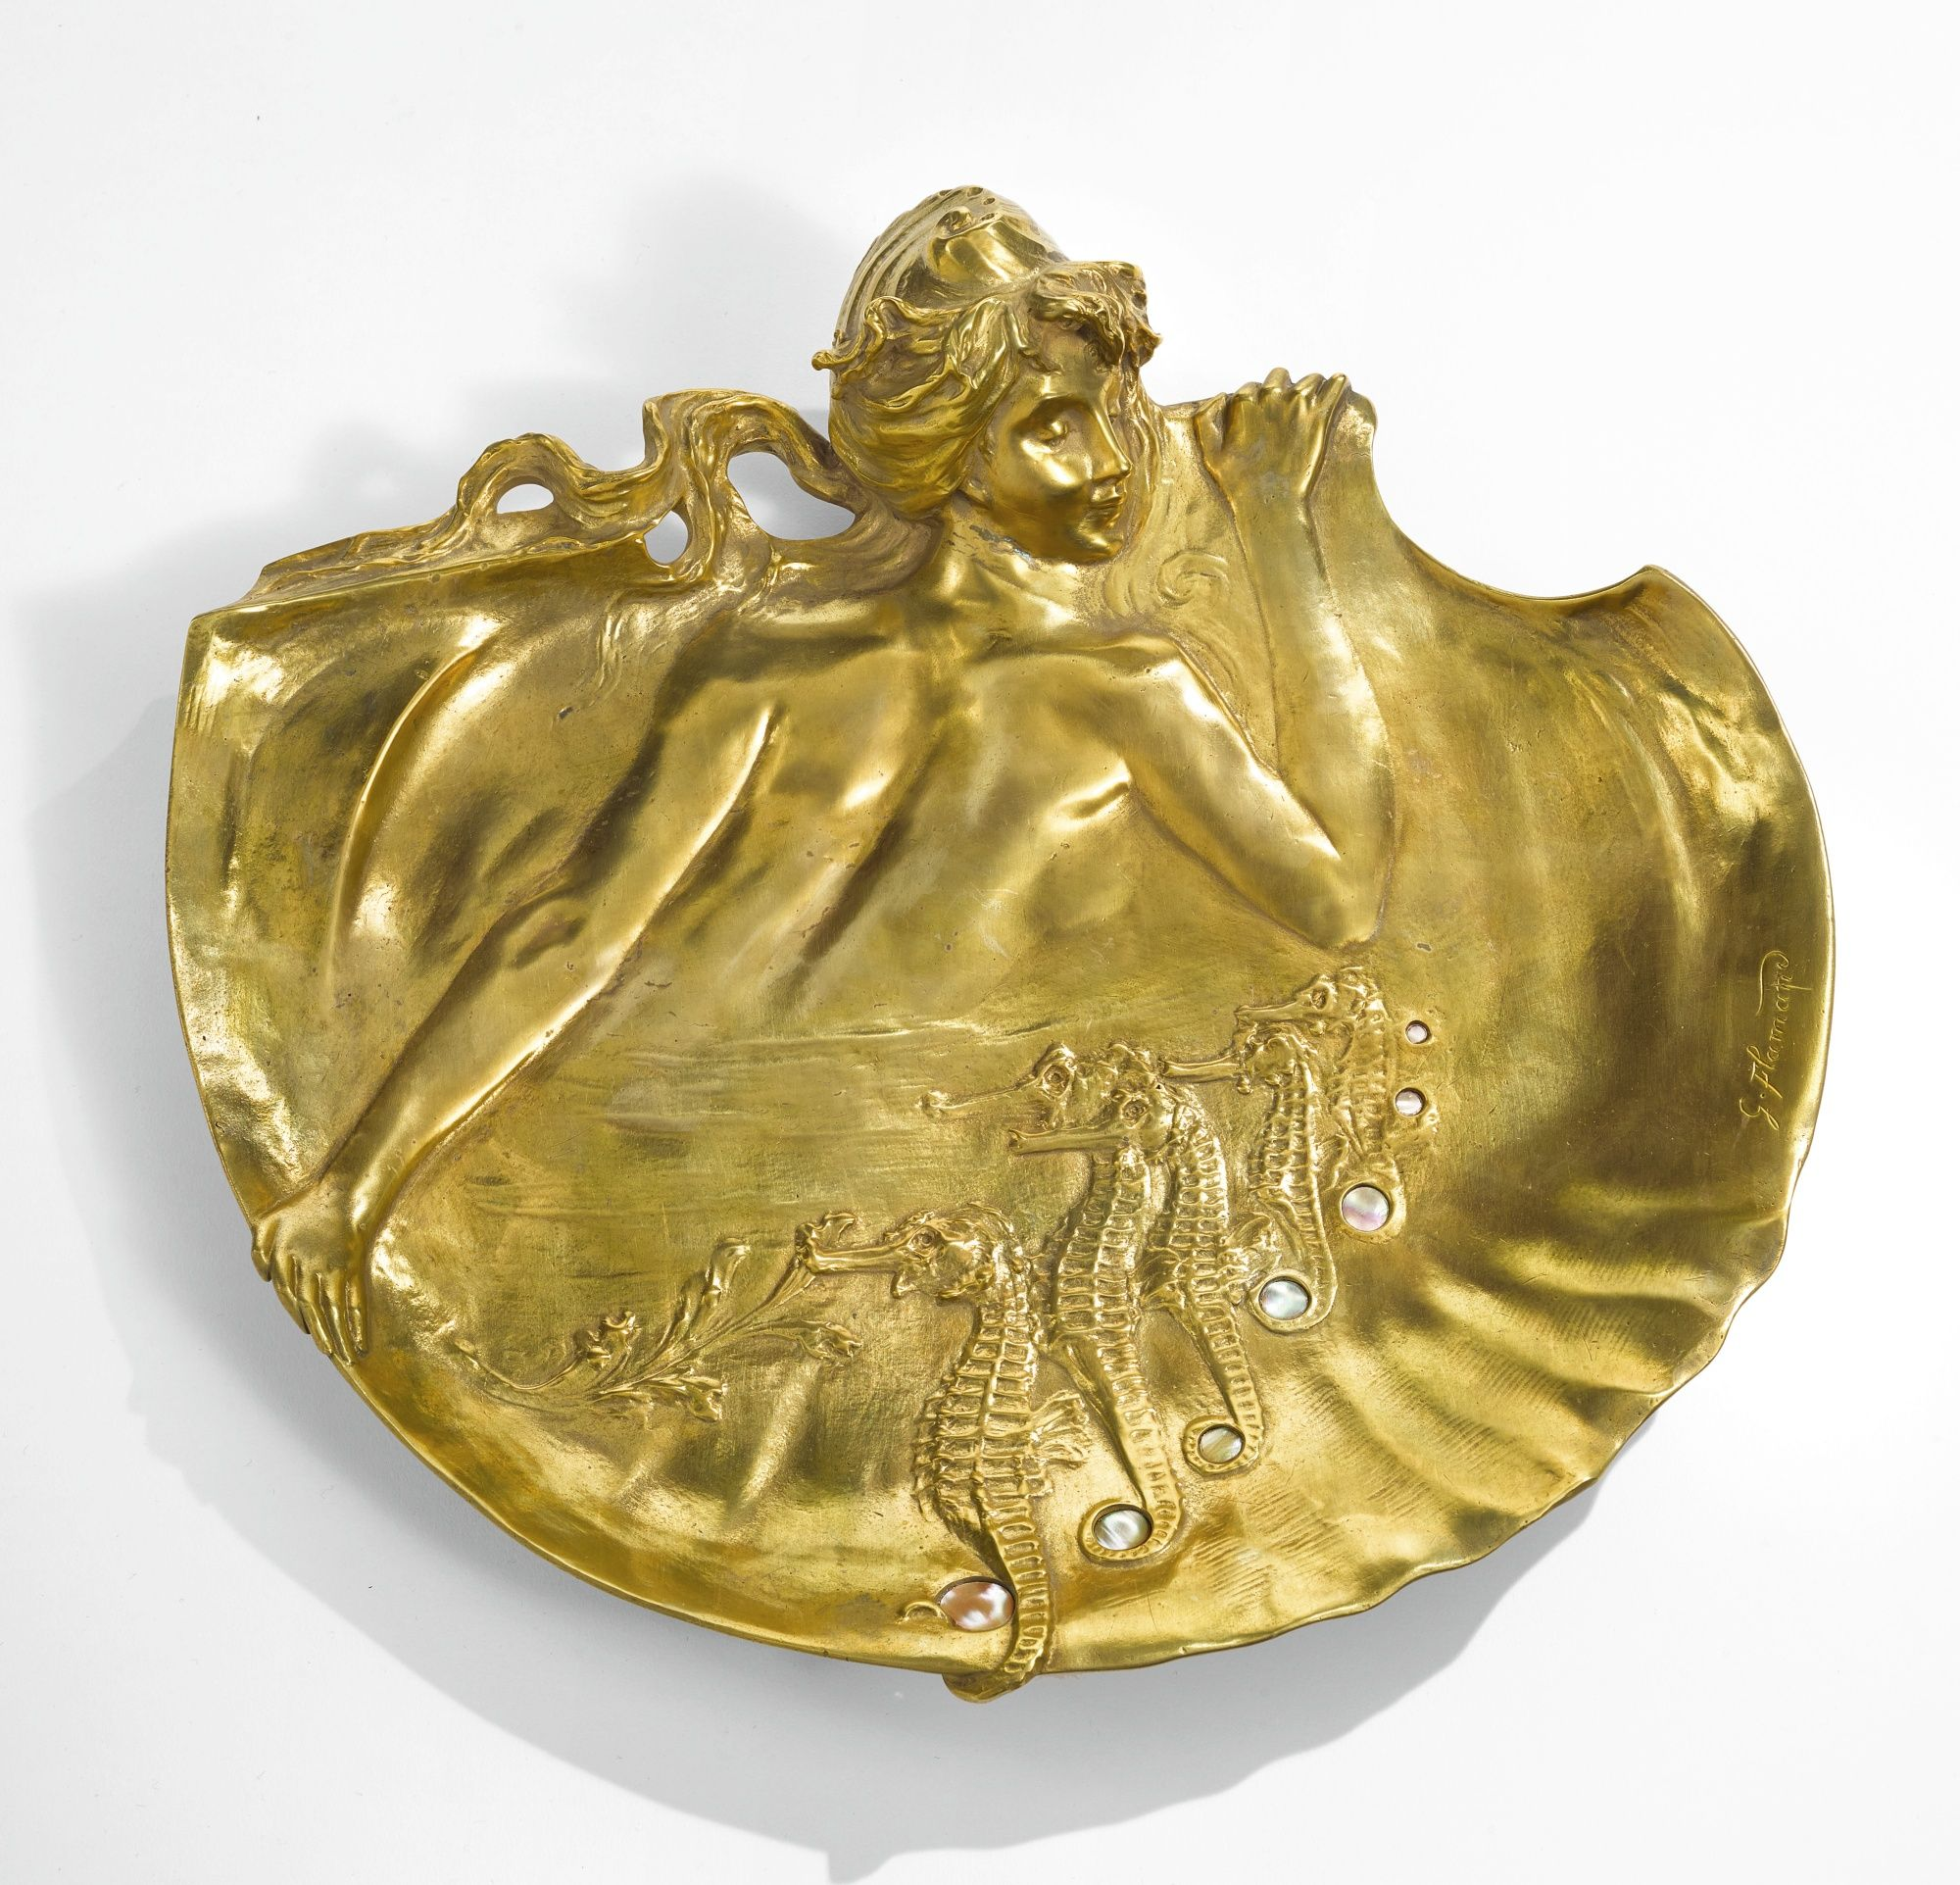 Georges Flamand  WALL PLAQUE  signed G. Flamand  gilt bronze and mother of pearl  circa 1900